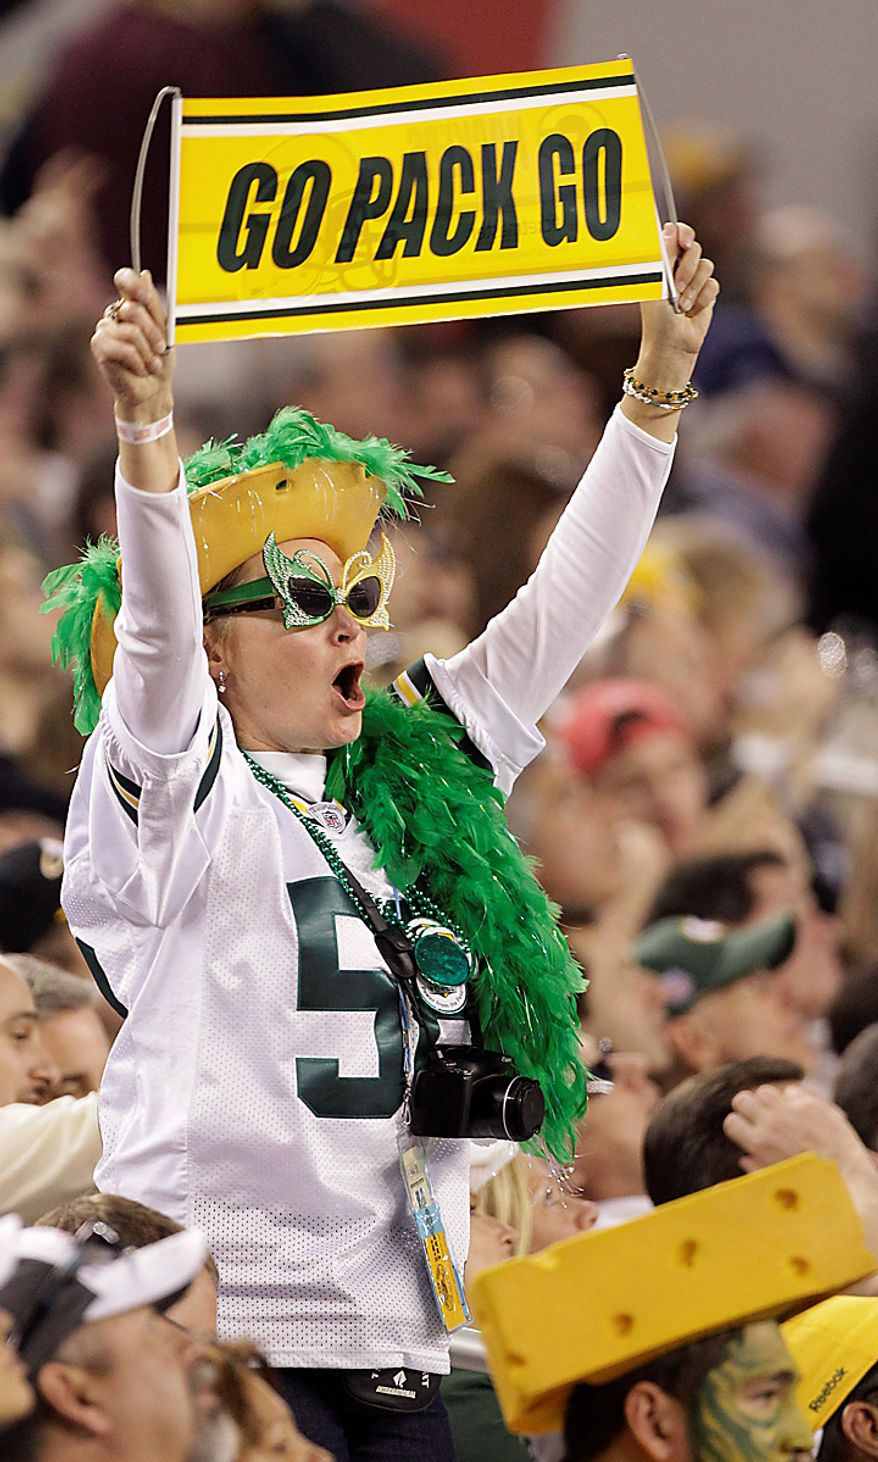 A Green Bay Packers fan watches the action during the first half of the NFL Super Bowl XLV football game between the Packers and the Pittsburgh Steelers on Sunday, Feb. 6, 2011, in Arlington, Texas. (AP Photo/Kathy Willens)